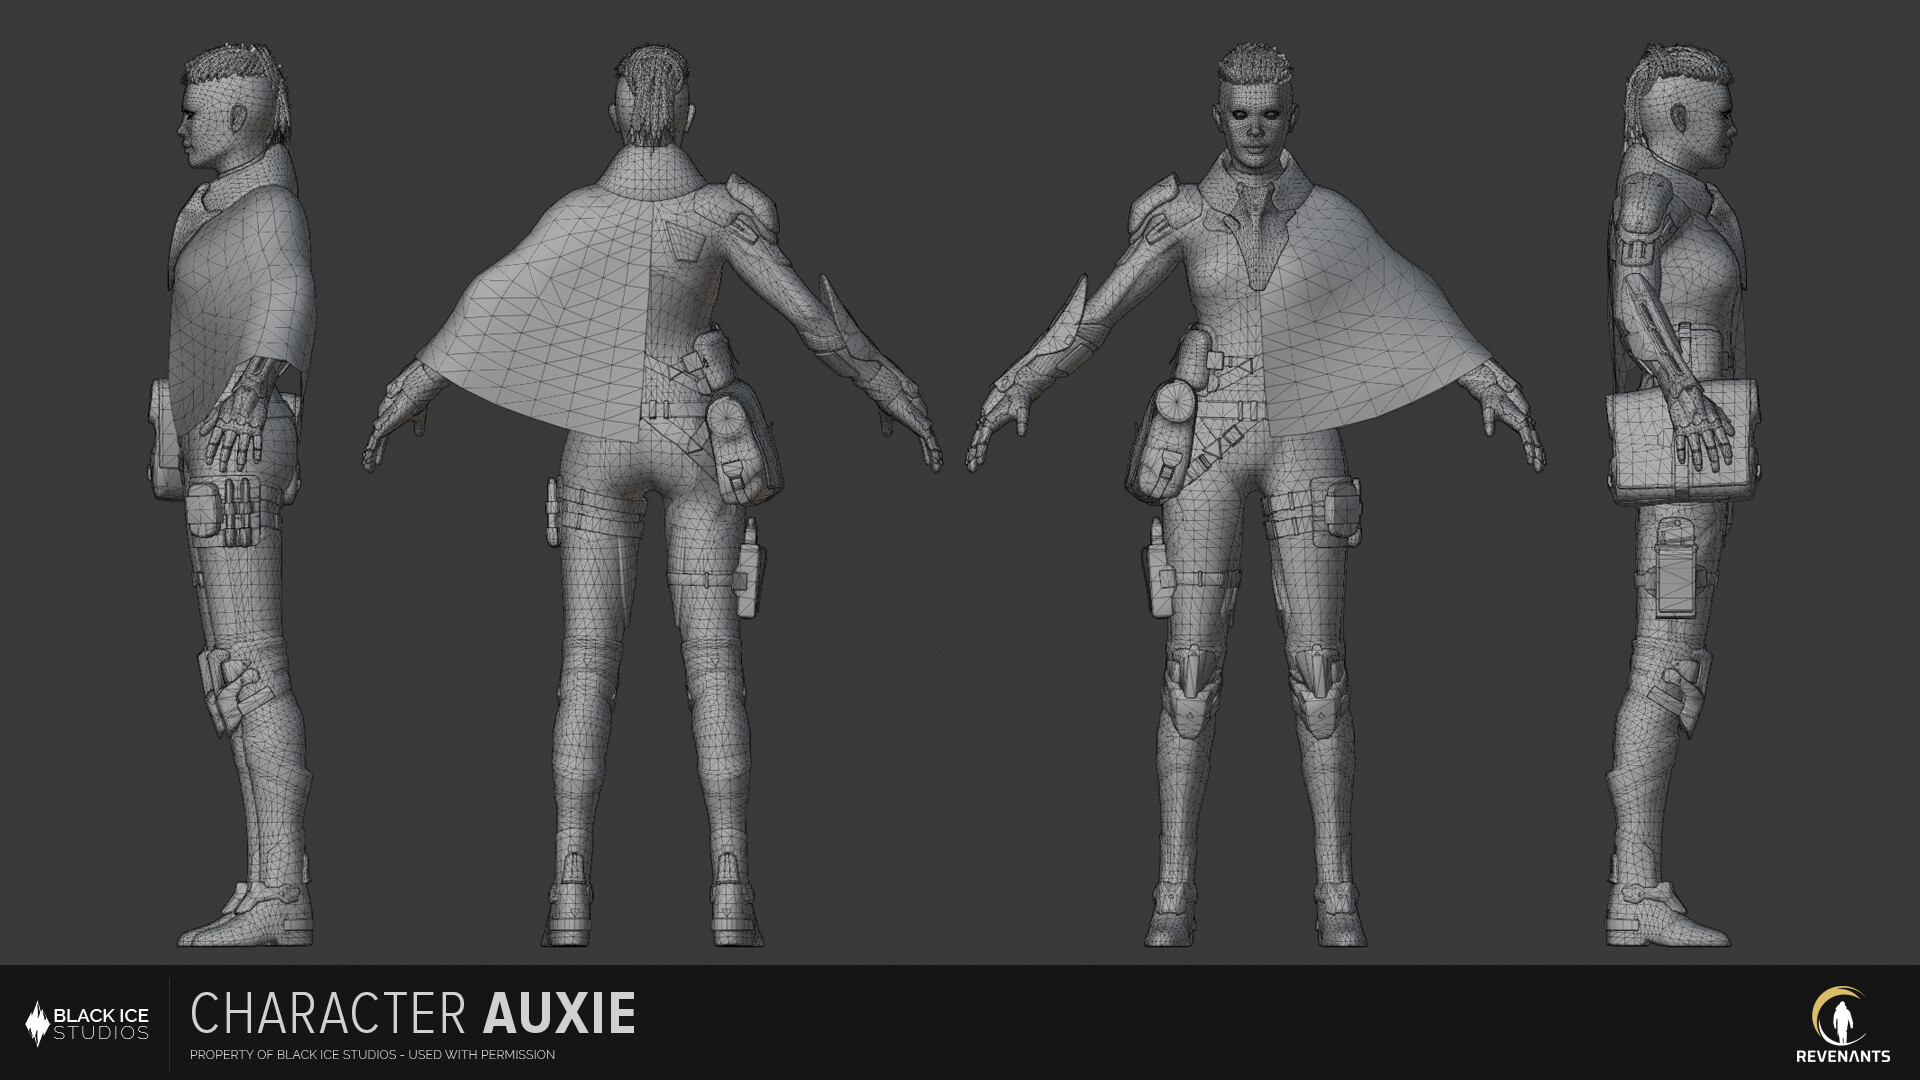 Polycount is about 65k tris